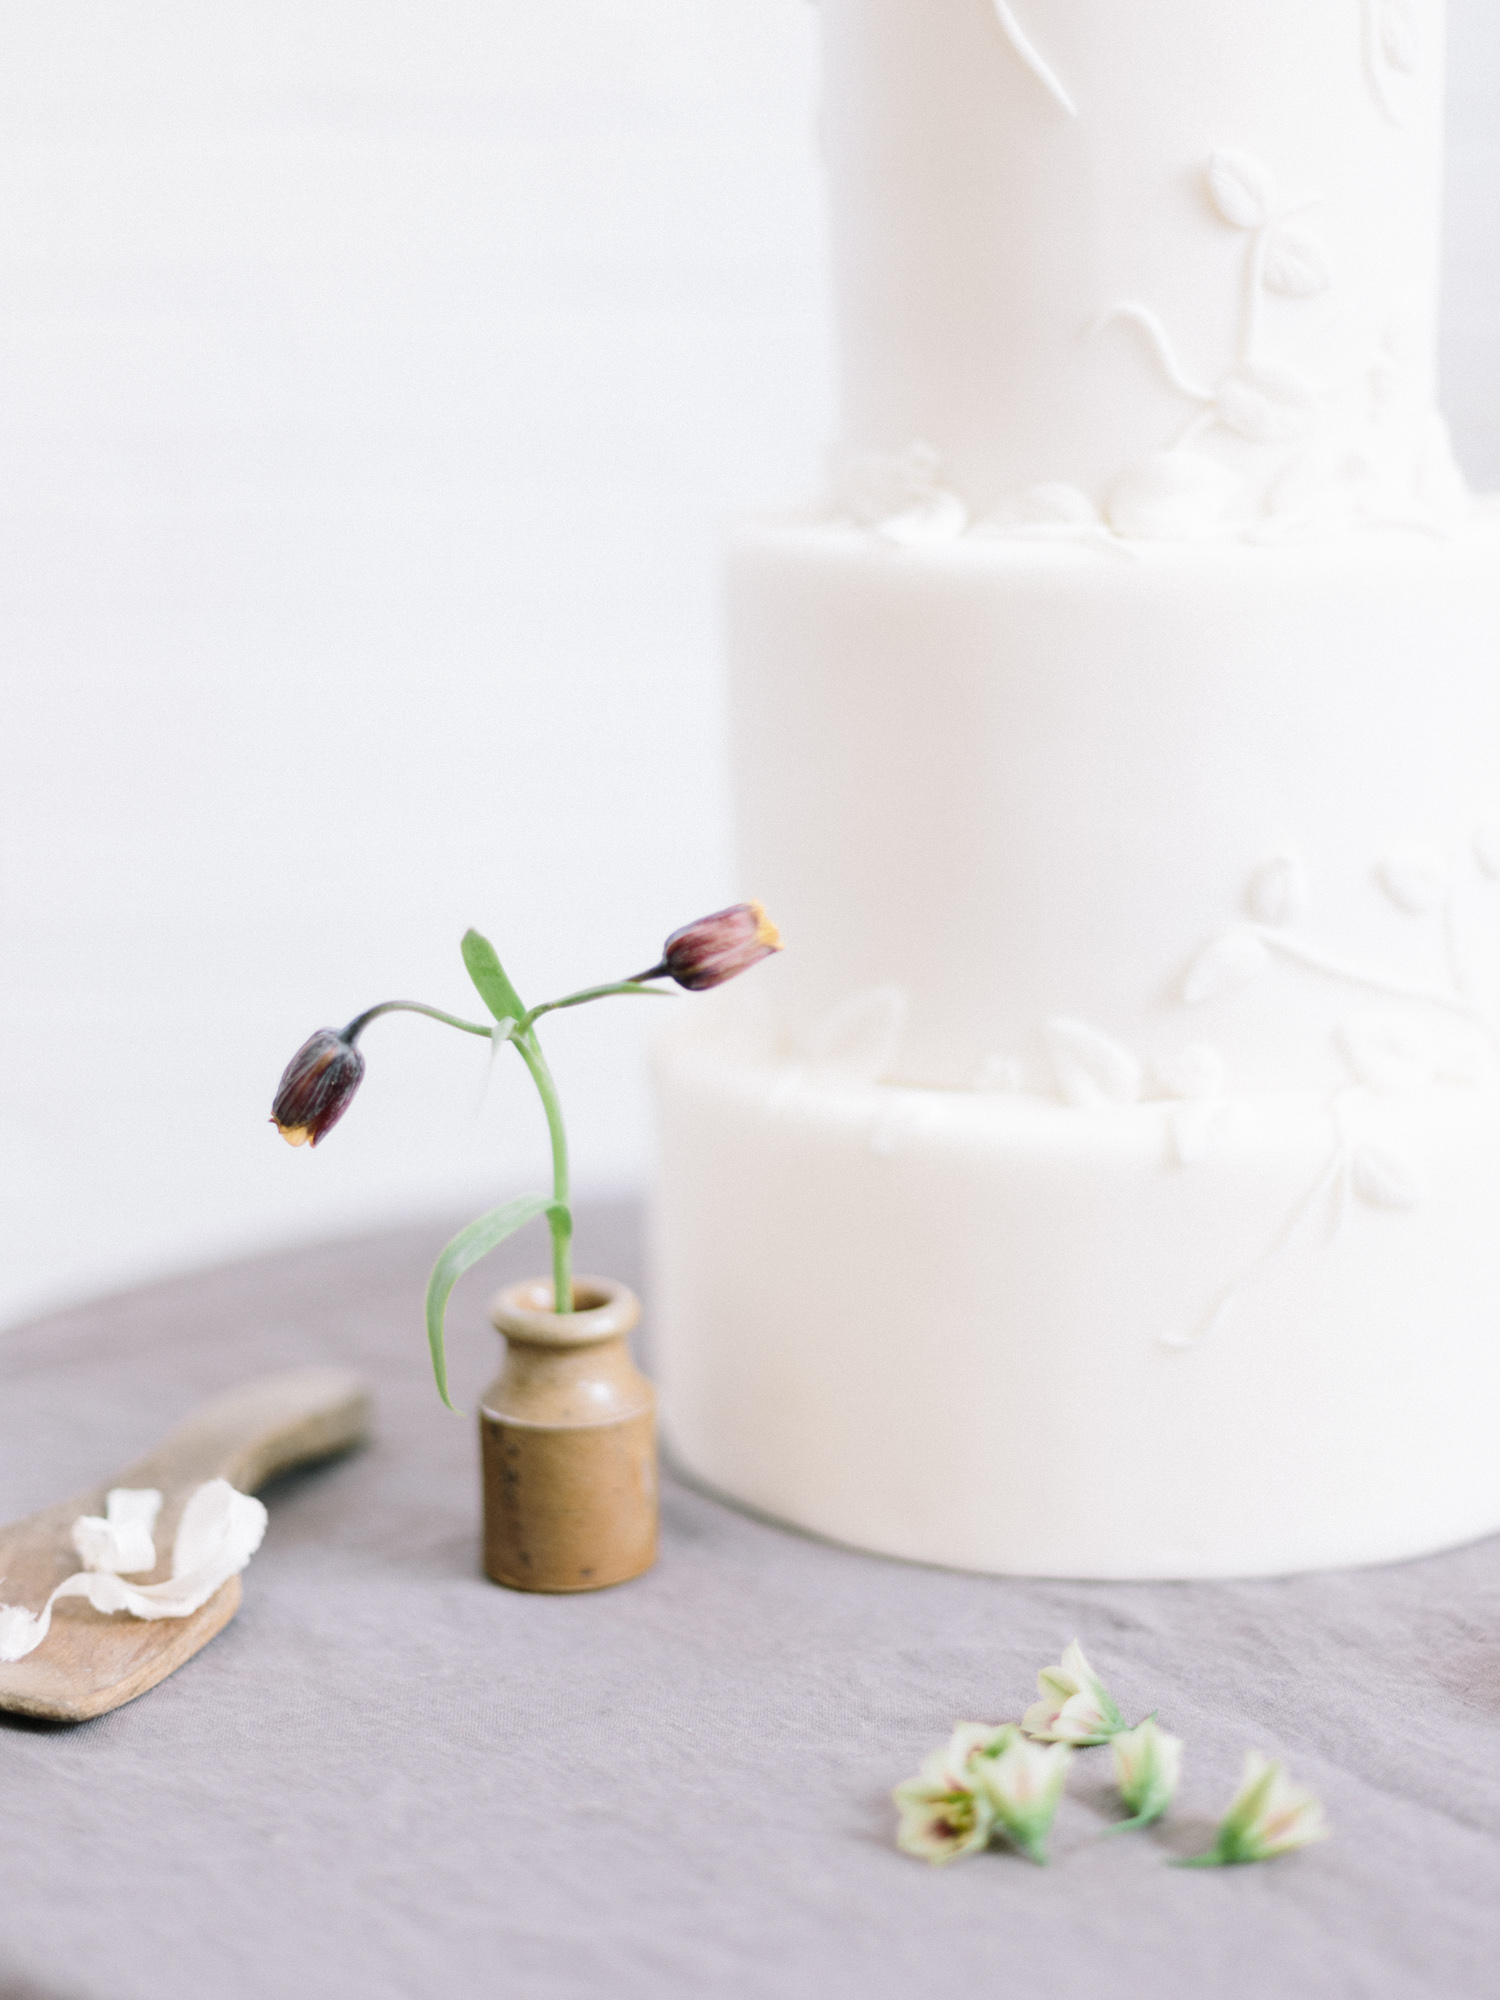 A handmade ceramic vase with a flower serves as wedding cake table decor